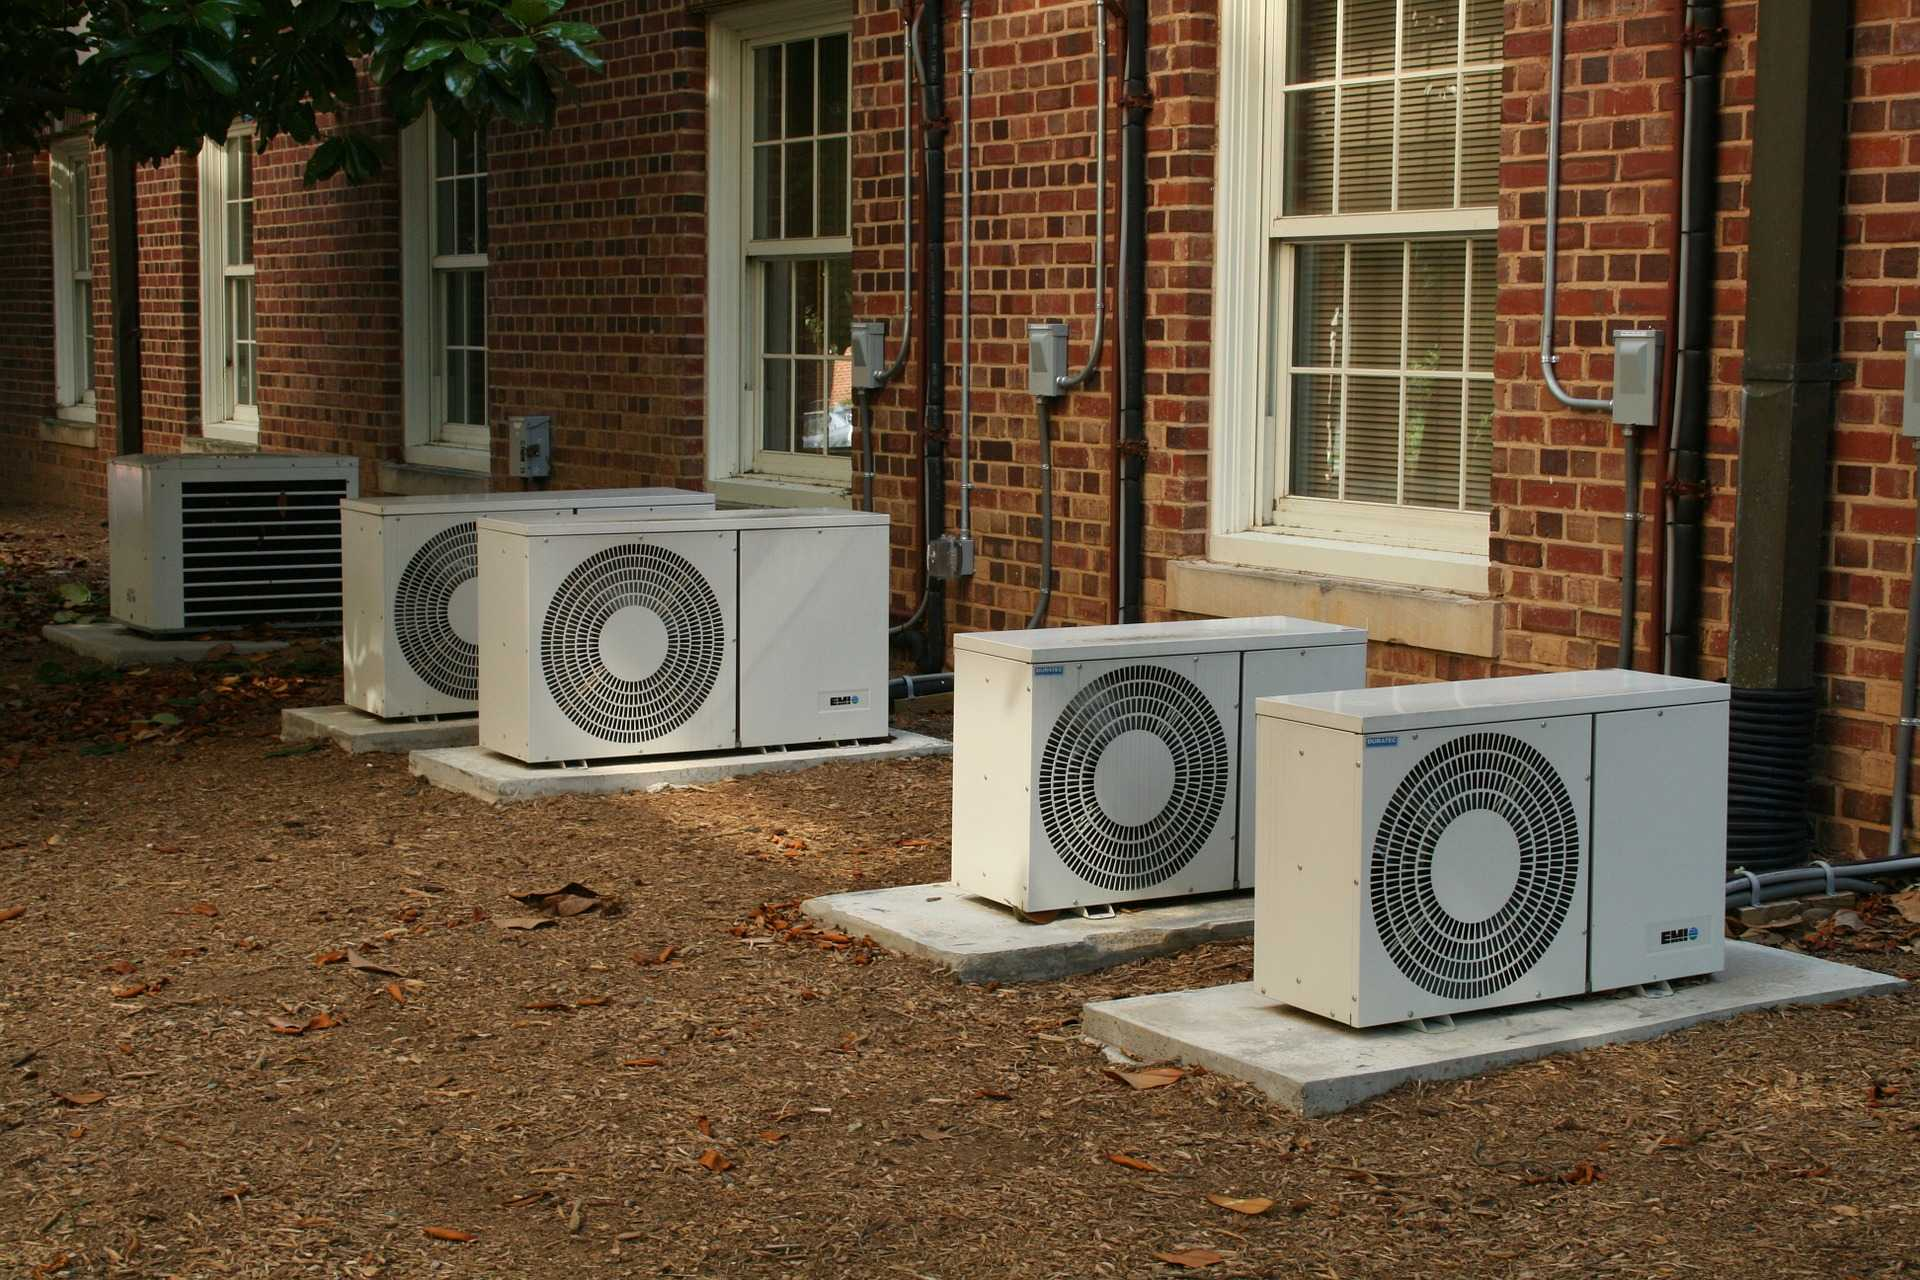 Inspect air conditioning units